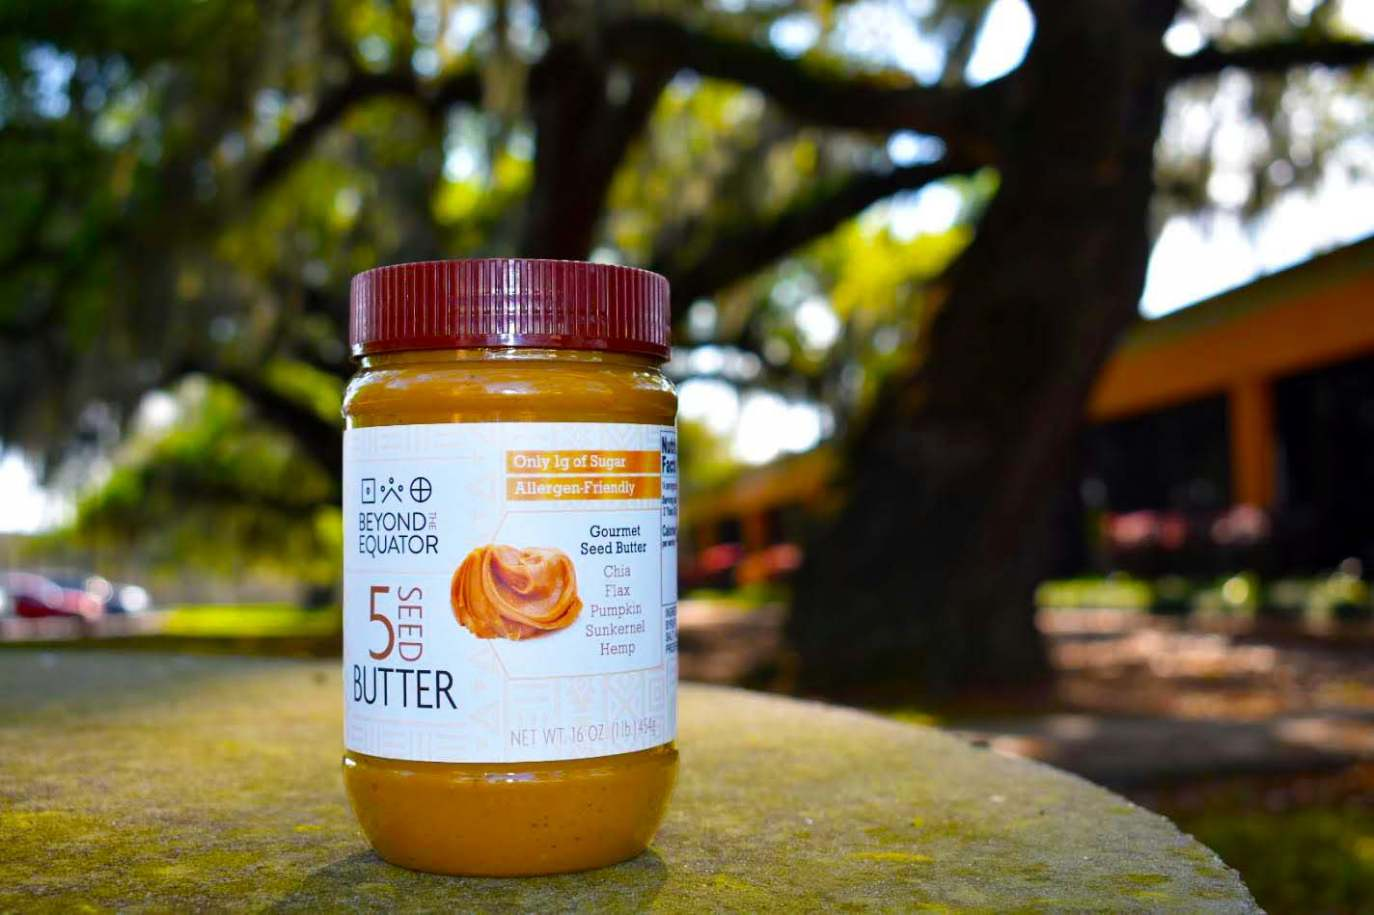 Beyond the Equator's 5 Seed Butter top honors in the Nut & Seed Butter category